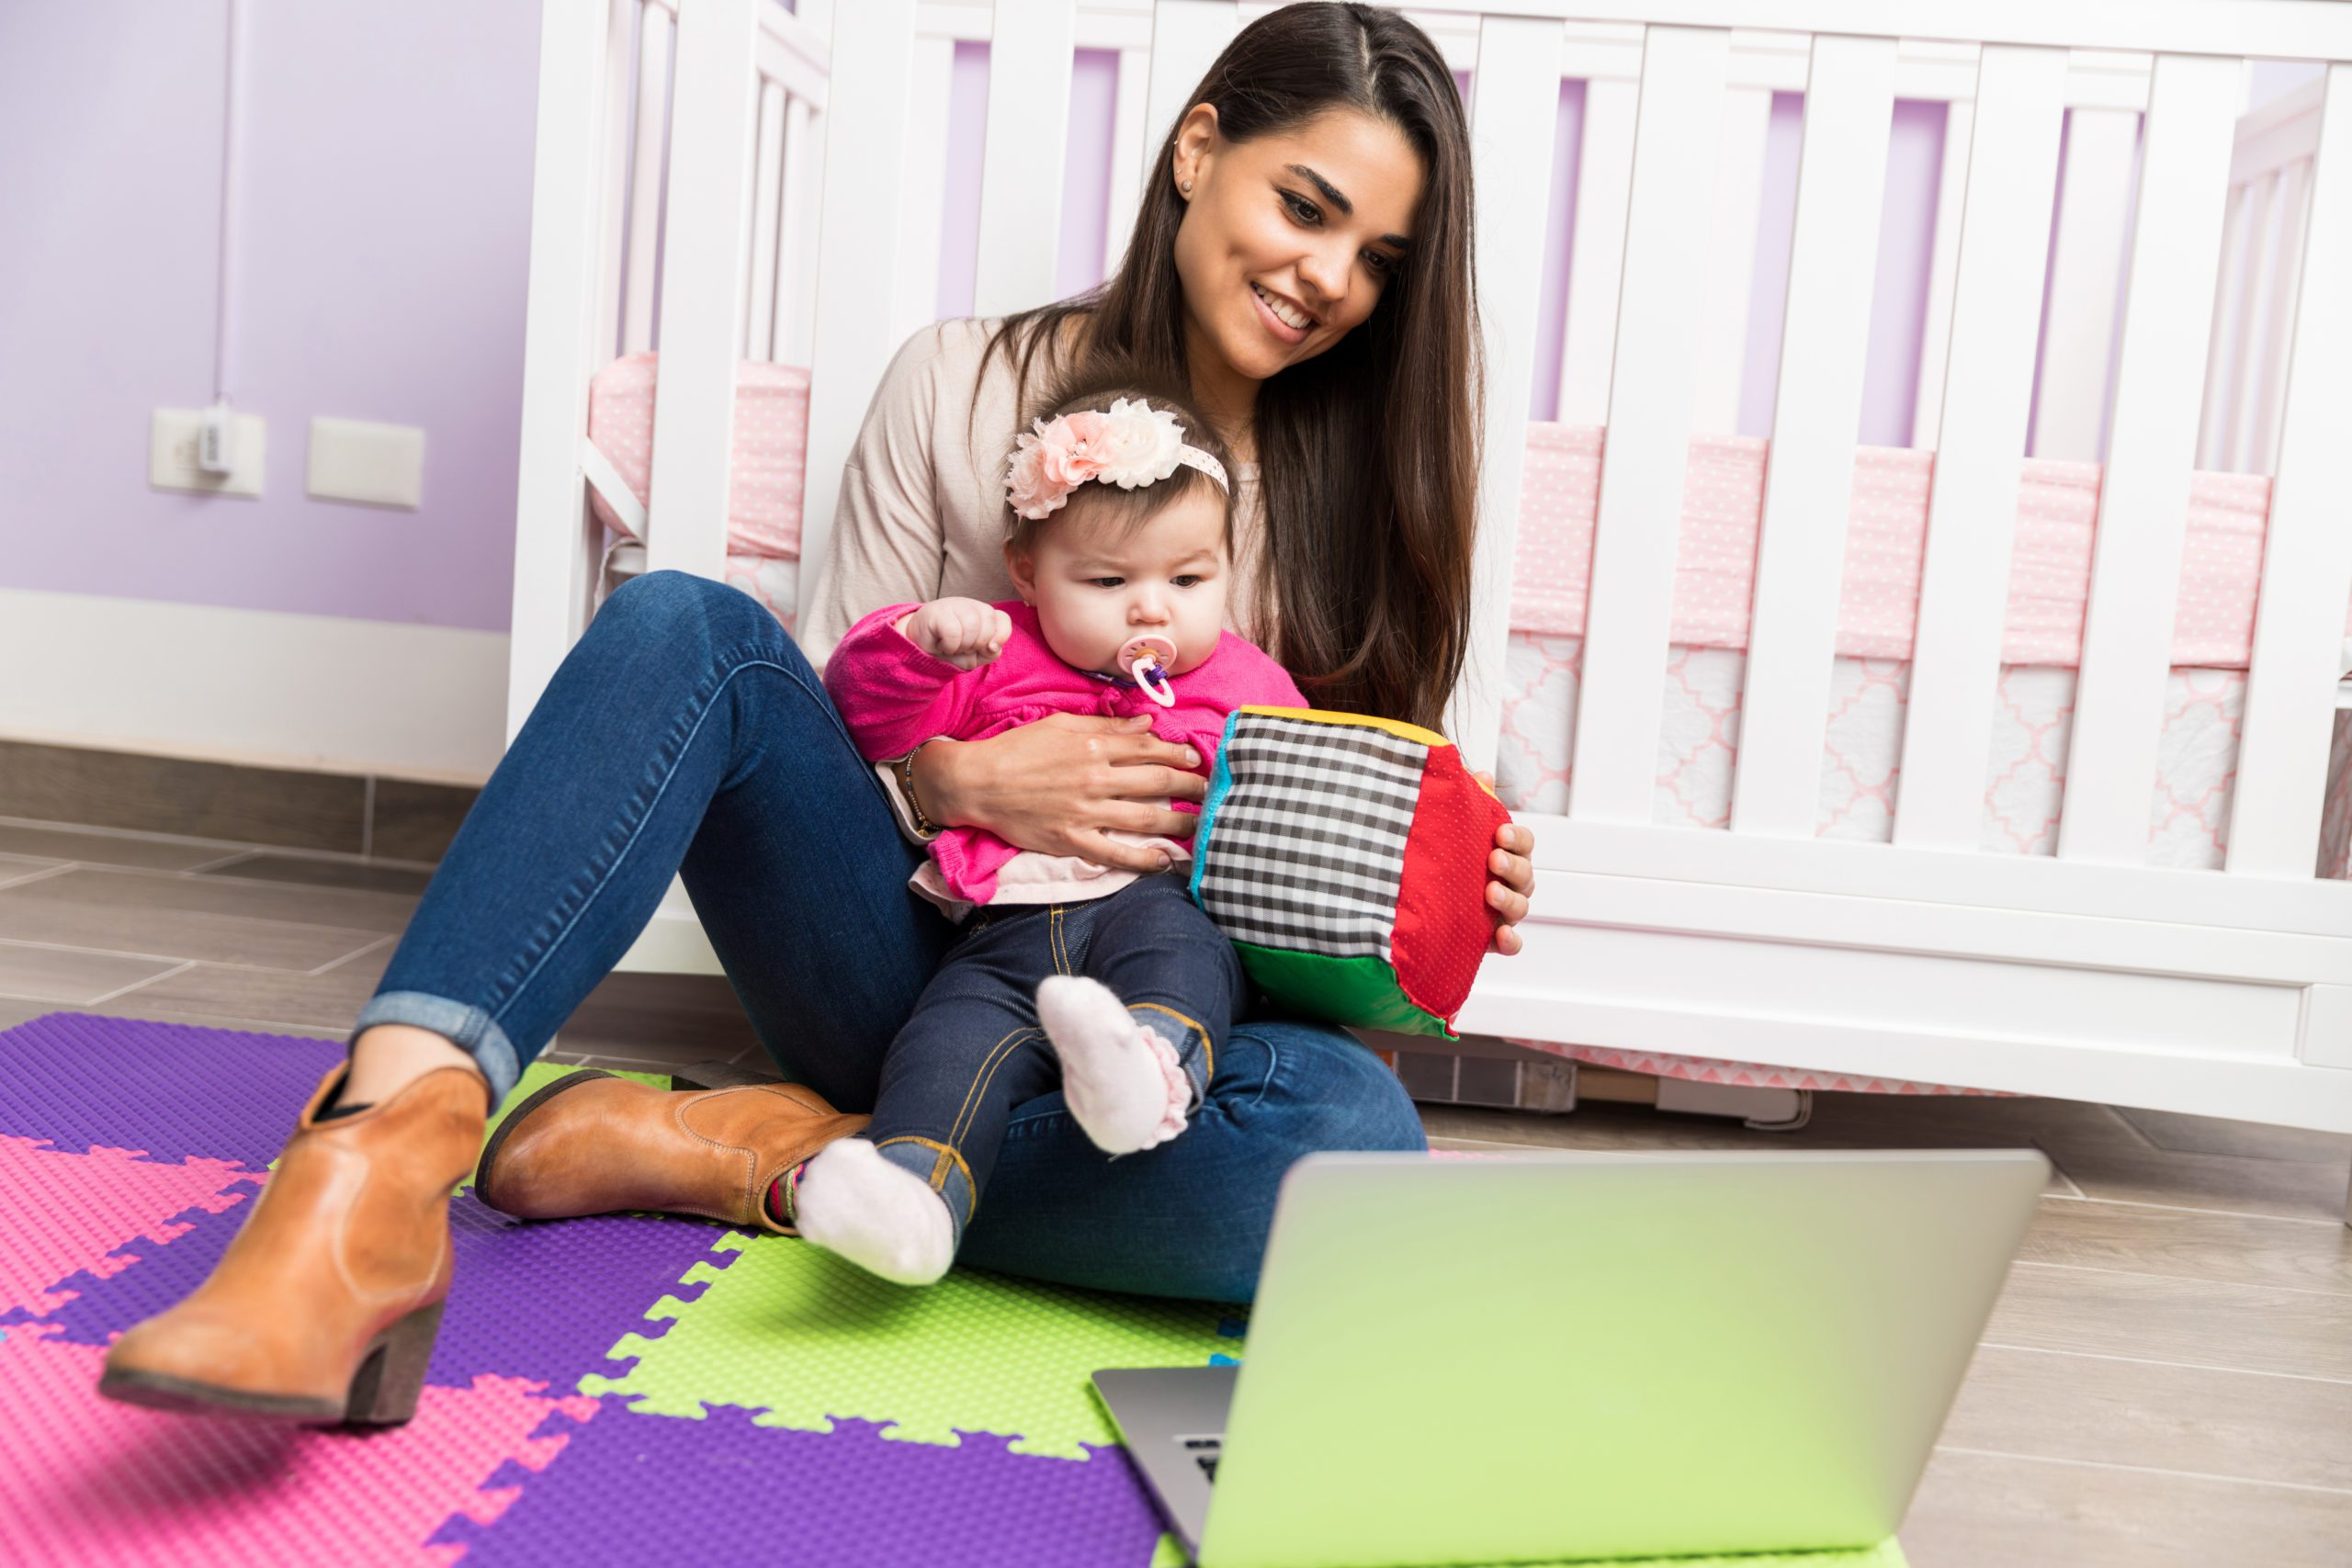 How to Grow your Blog: If you're a work-from-home mamma and looking to pick up your blog traffic- here's how to grow your blog for long-term success. #momblogger #bloggerlifestyle #makemoneyblogging #wahm #sahm